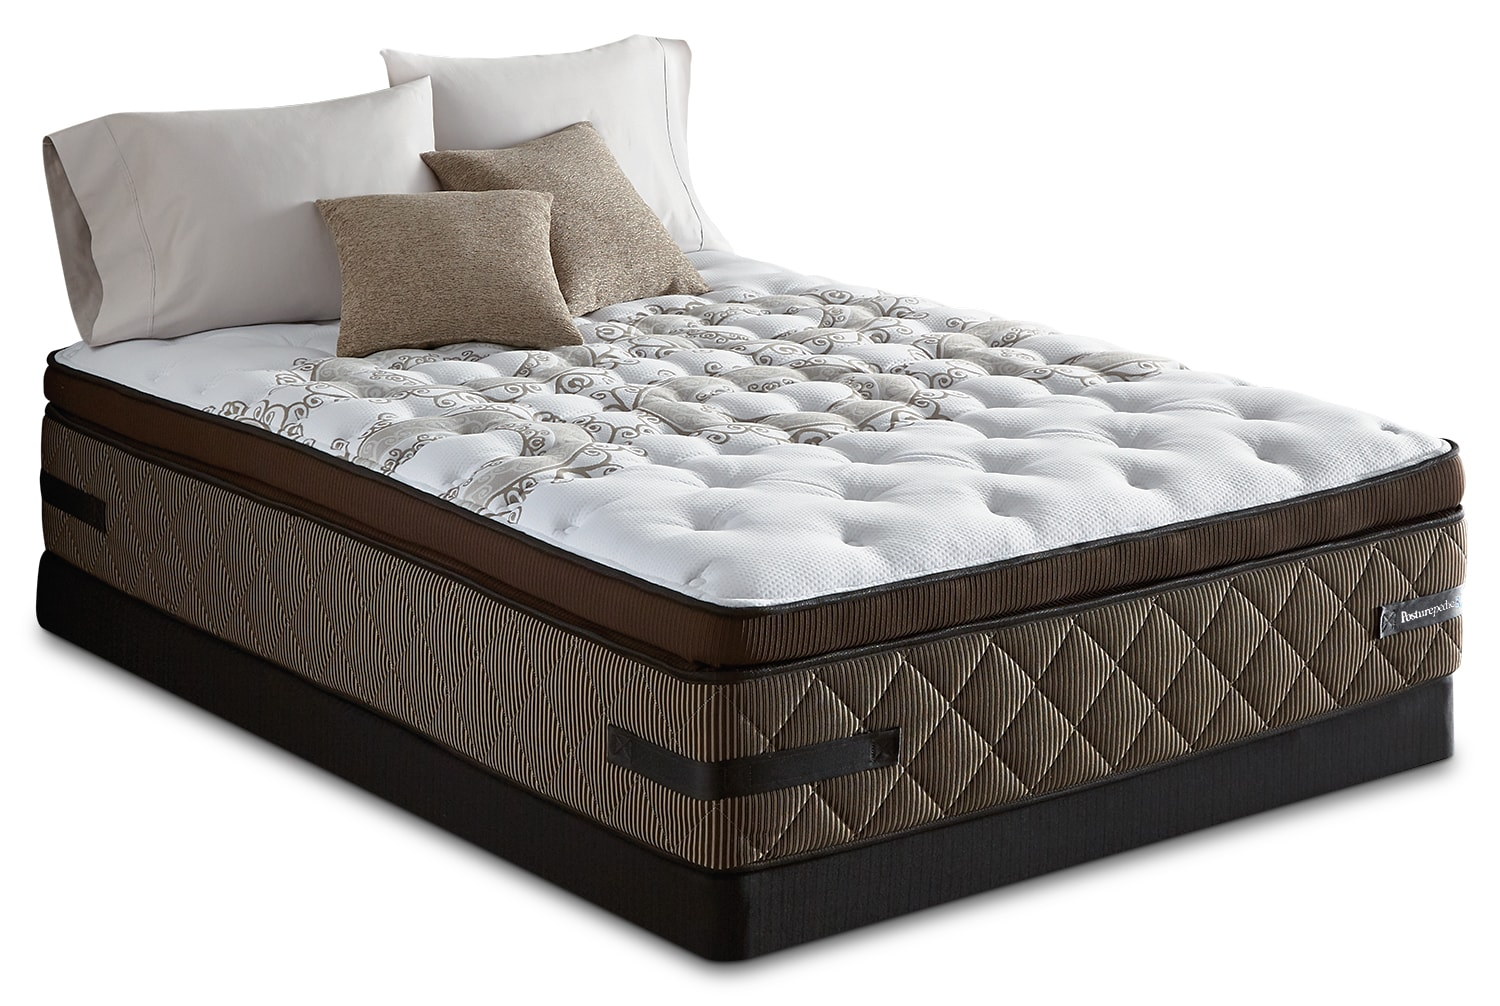 Mattresses and Bedding - Sealy Crown Jewel Sunsera Euro Pillow-Top Firm Low-Profile Split Queen Mattress Set